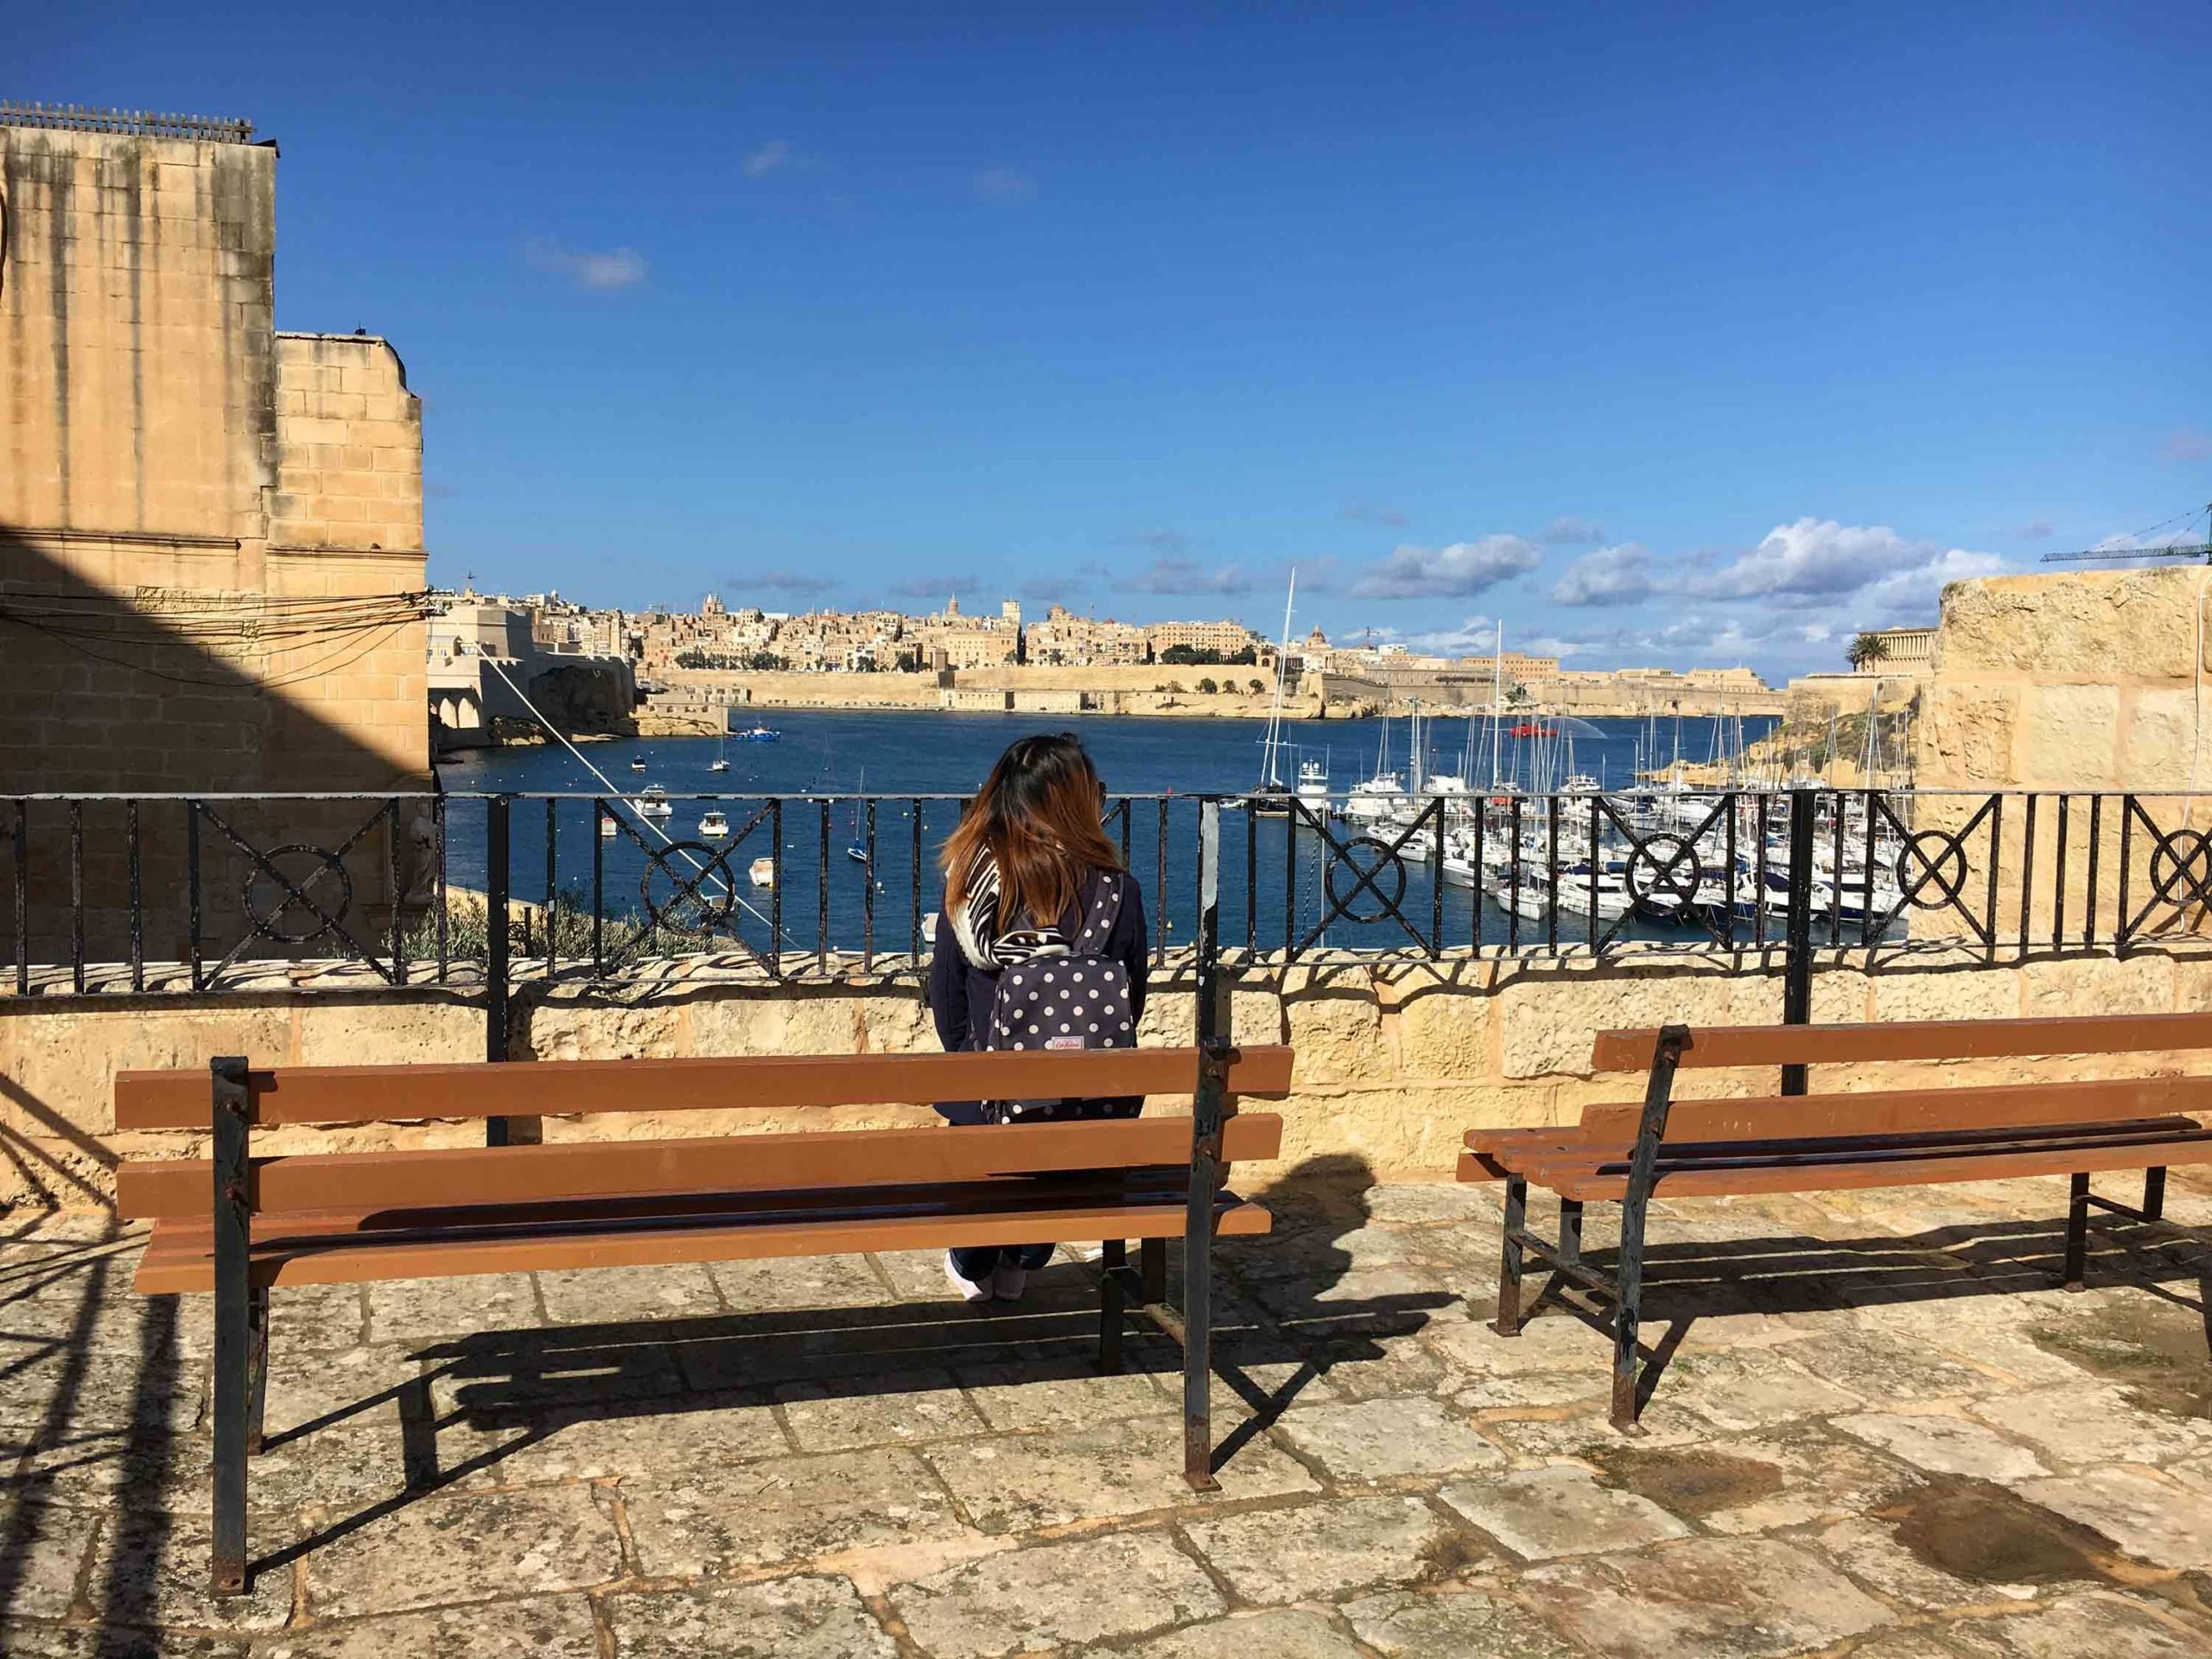 A weekend in Rainy Malta episode 3: Seeing the highlights of Malta with Hop-on Hop-off bus tour